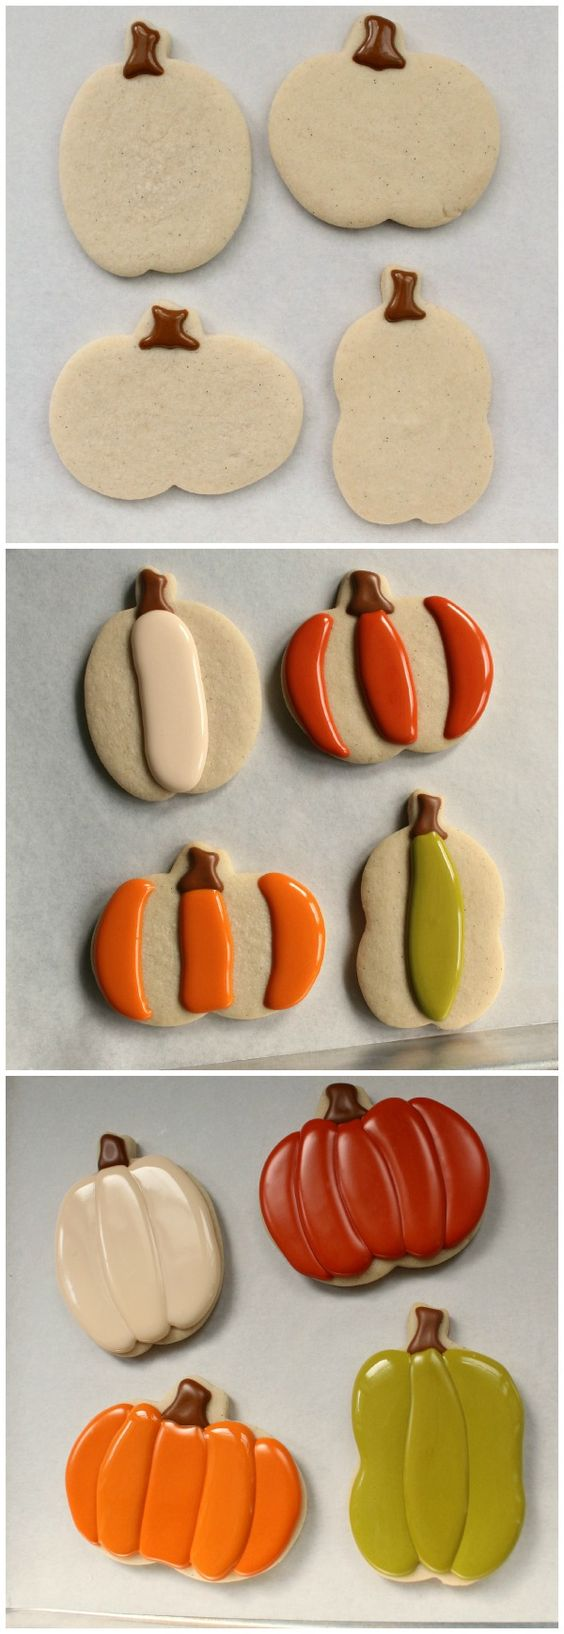 Pumpkin Cookie How-To. Even with this how-to, I won't master a great looking cookie like these.